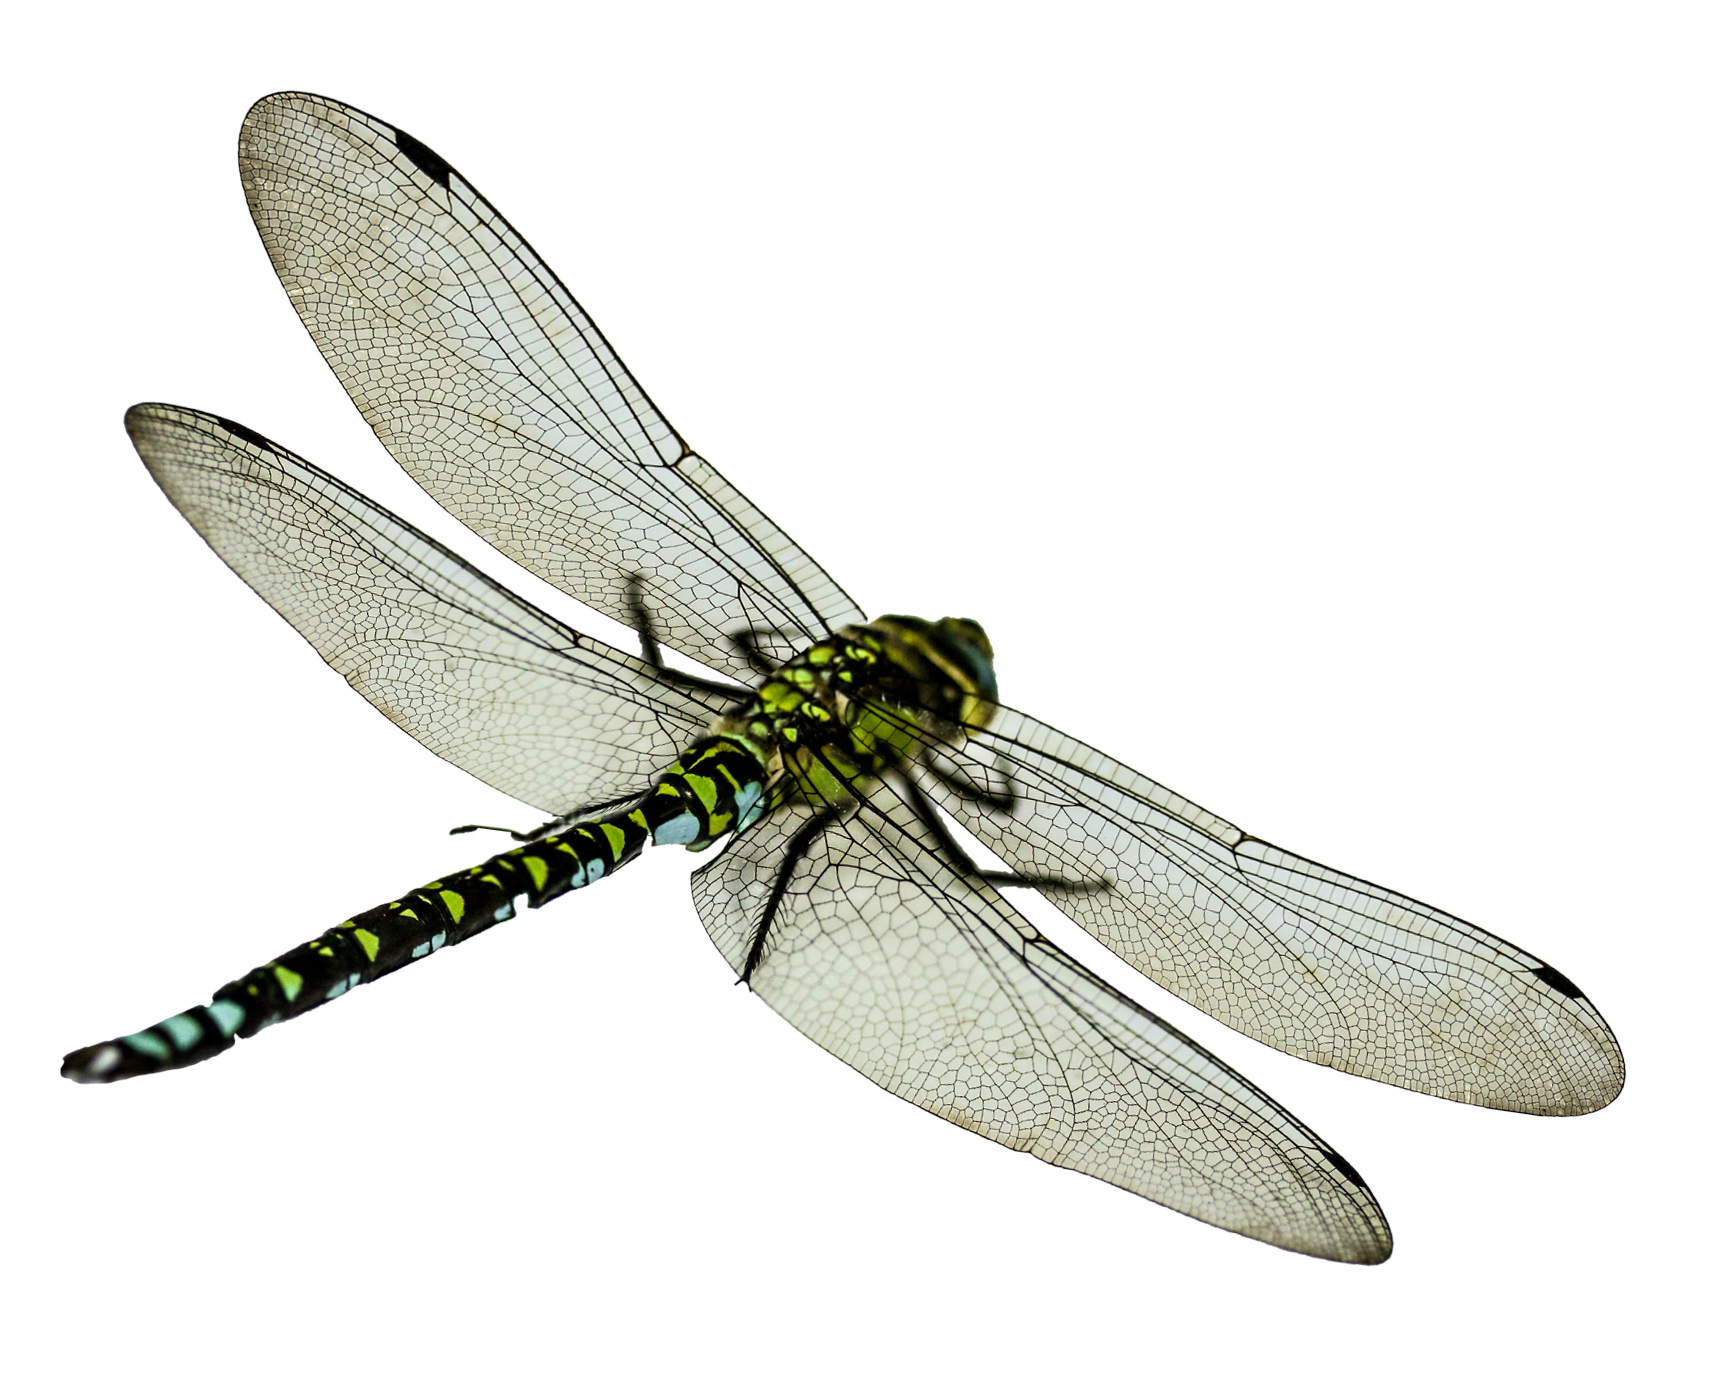 Dragon fly png. Dragonfly images free download